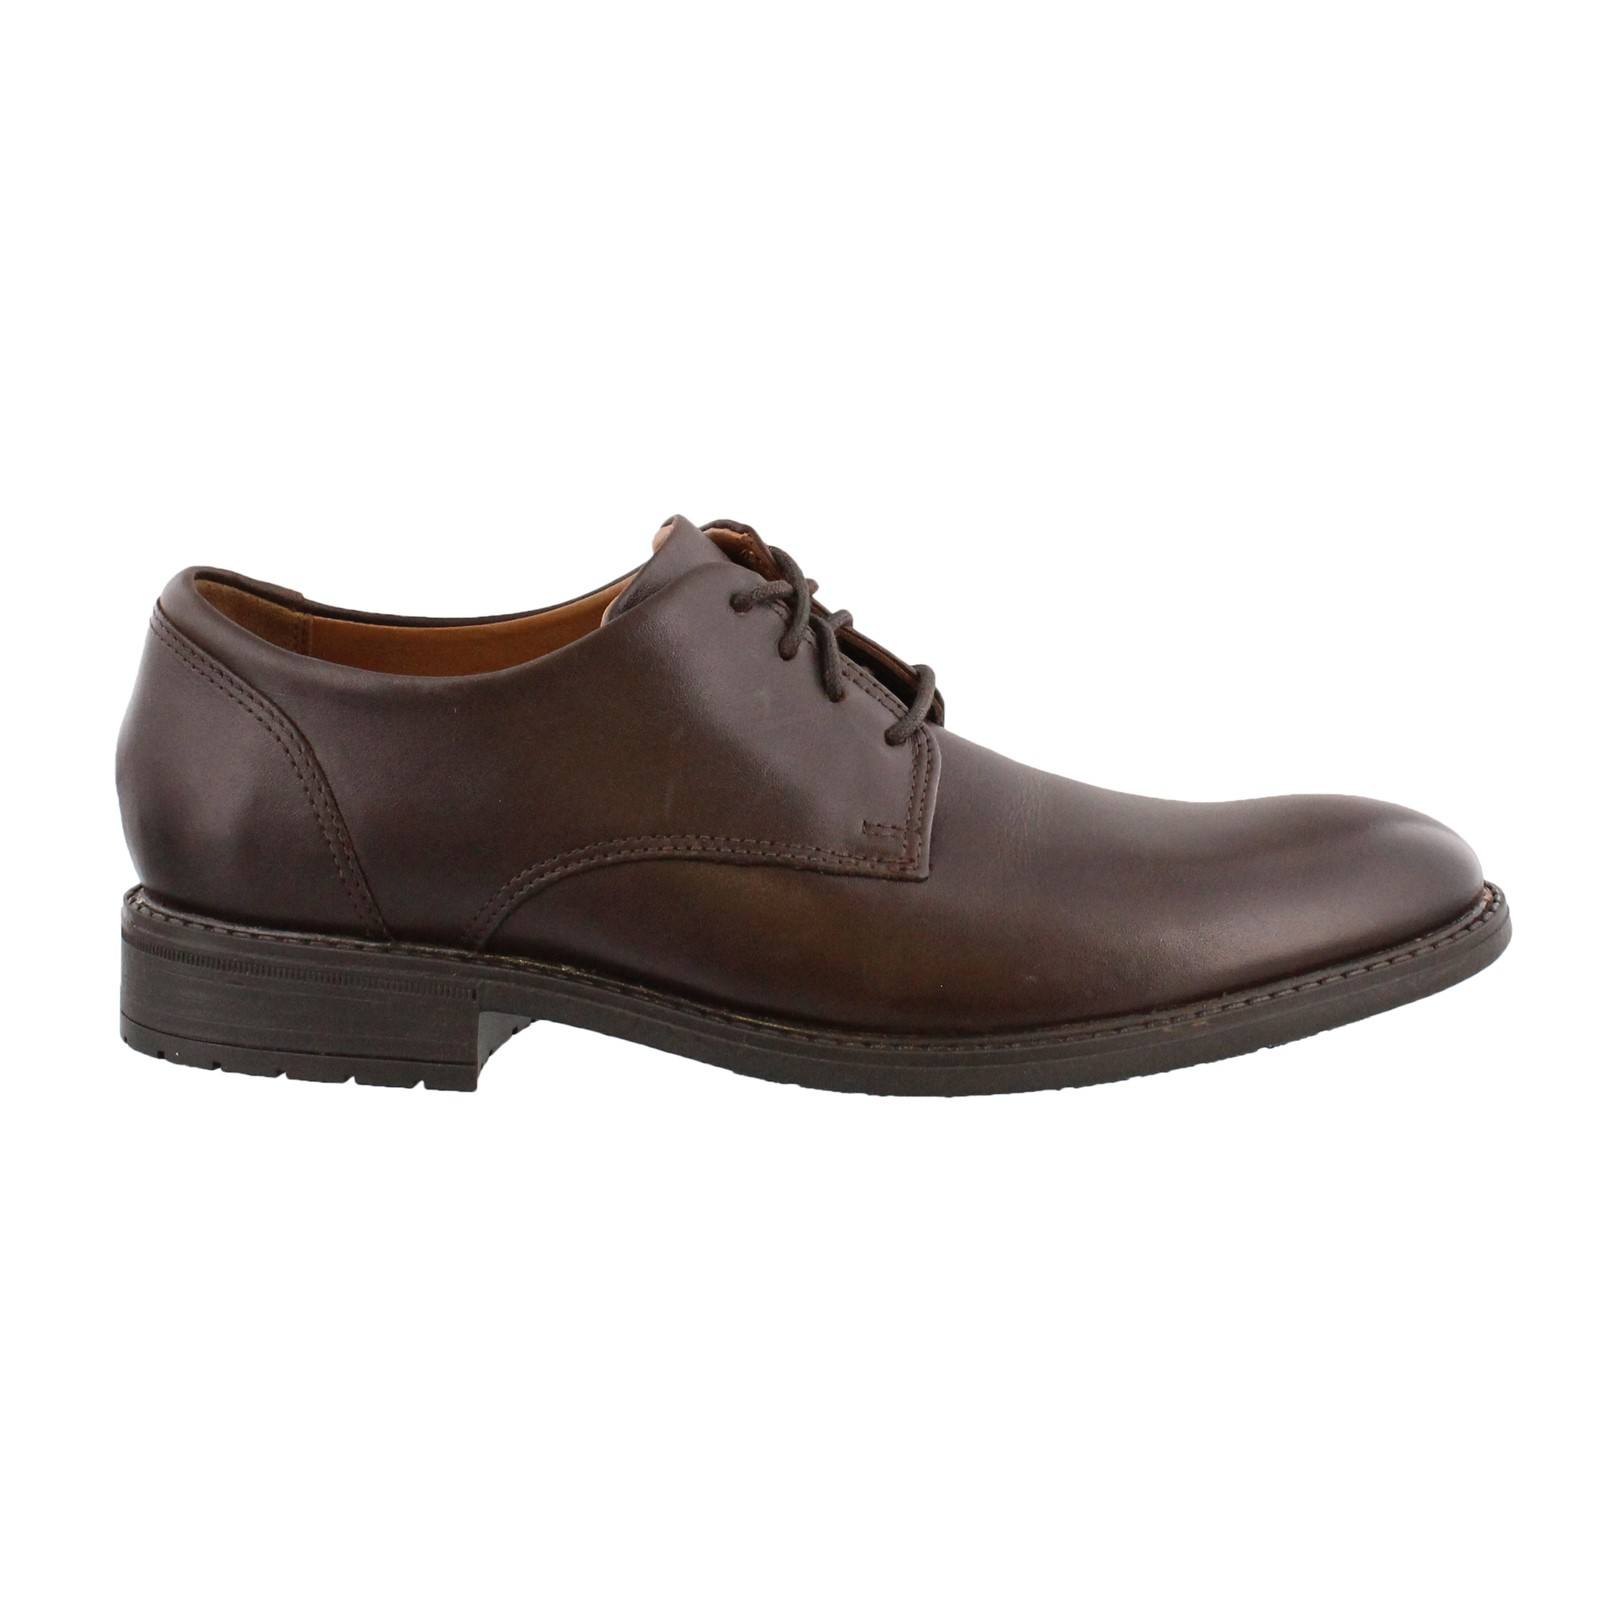 Men's Clarks, Truxton Plain Waterproof Lace up Shoes